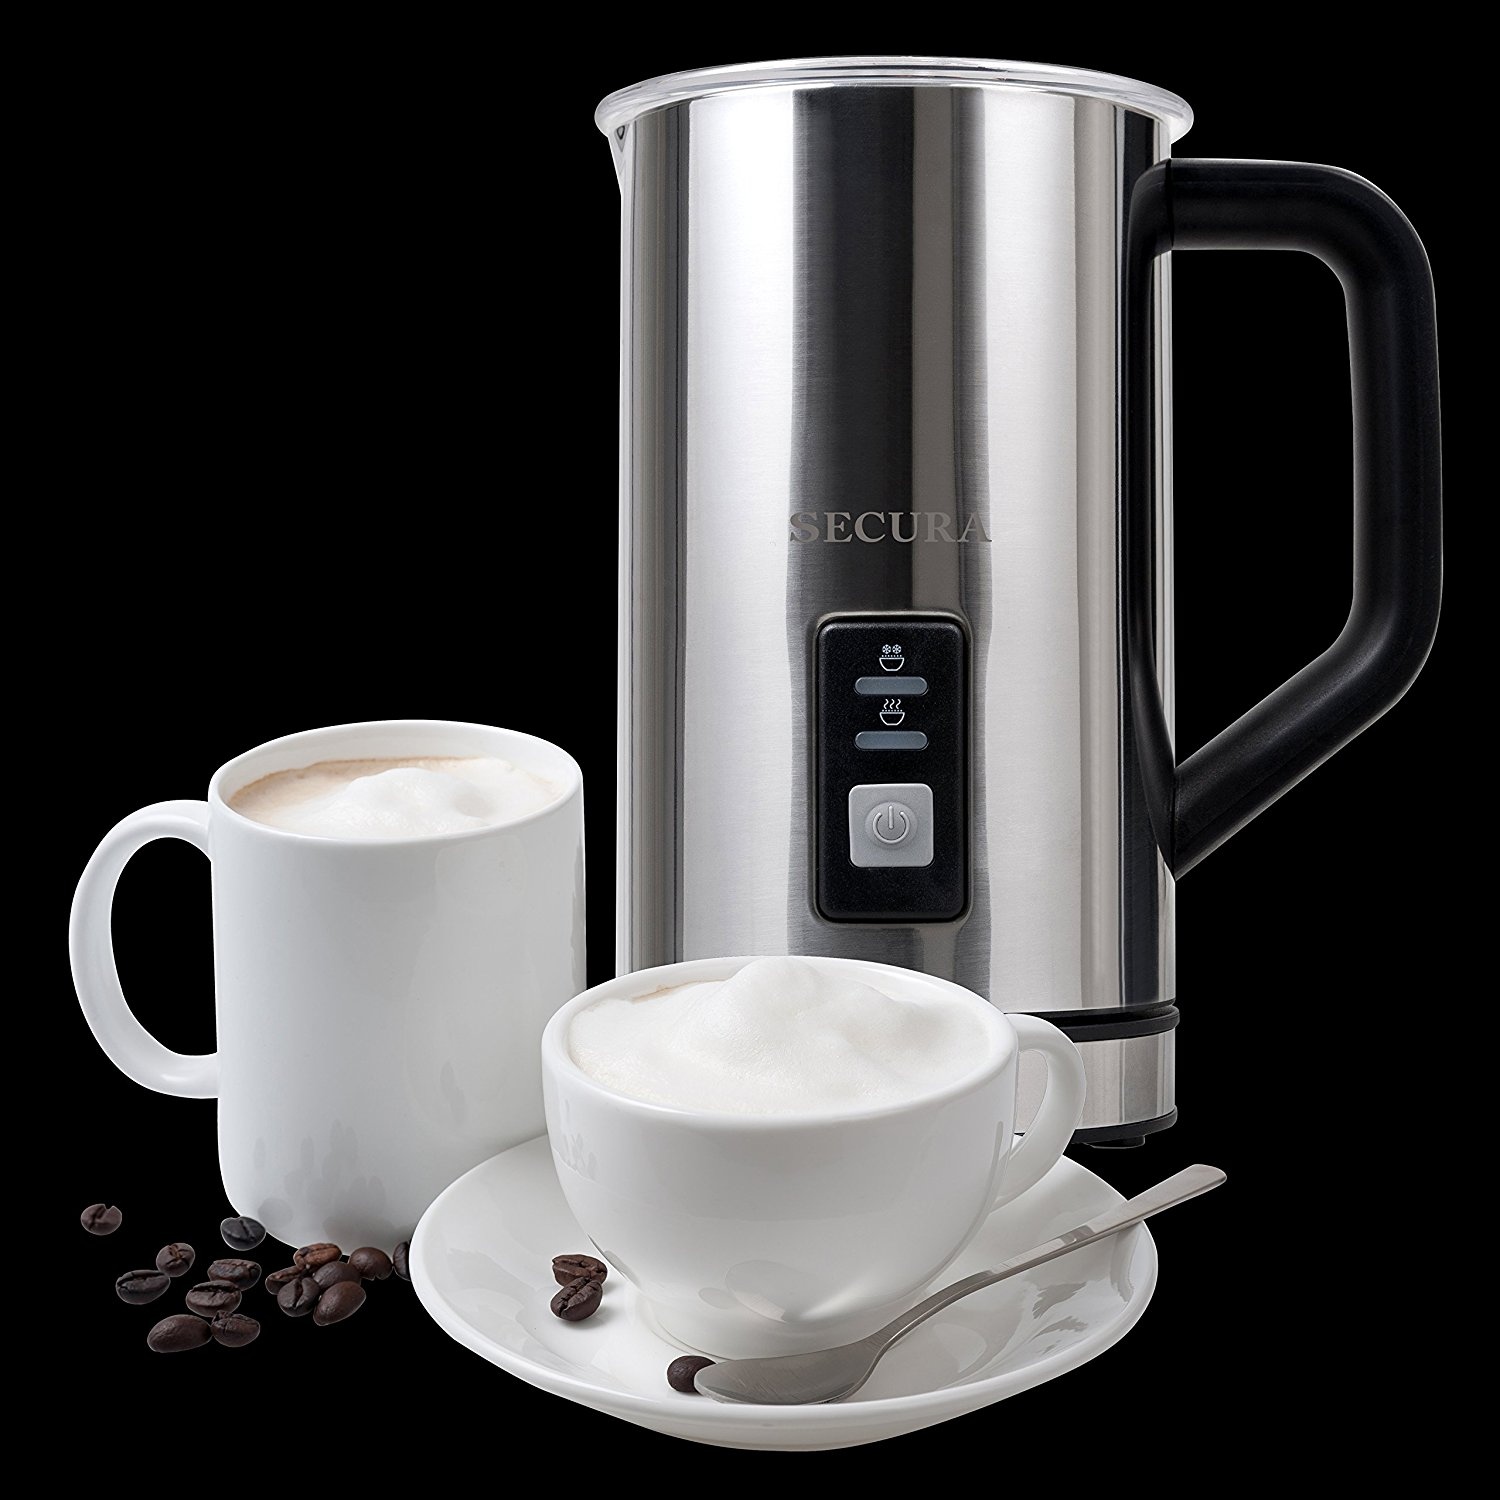 True coffee connoisseurs will appreciate a nice milk frother. The Secura Automatic Electric Milk Frother and Warmer from Amazon makes both hot and cold milk froth for cappuccinos, lattes or even *gasp* coffee free drinks.{&amp;nbsp;} (Image: Amazon.com)<p></p>